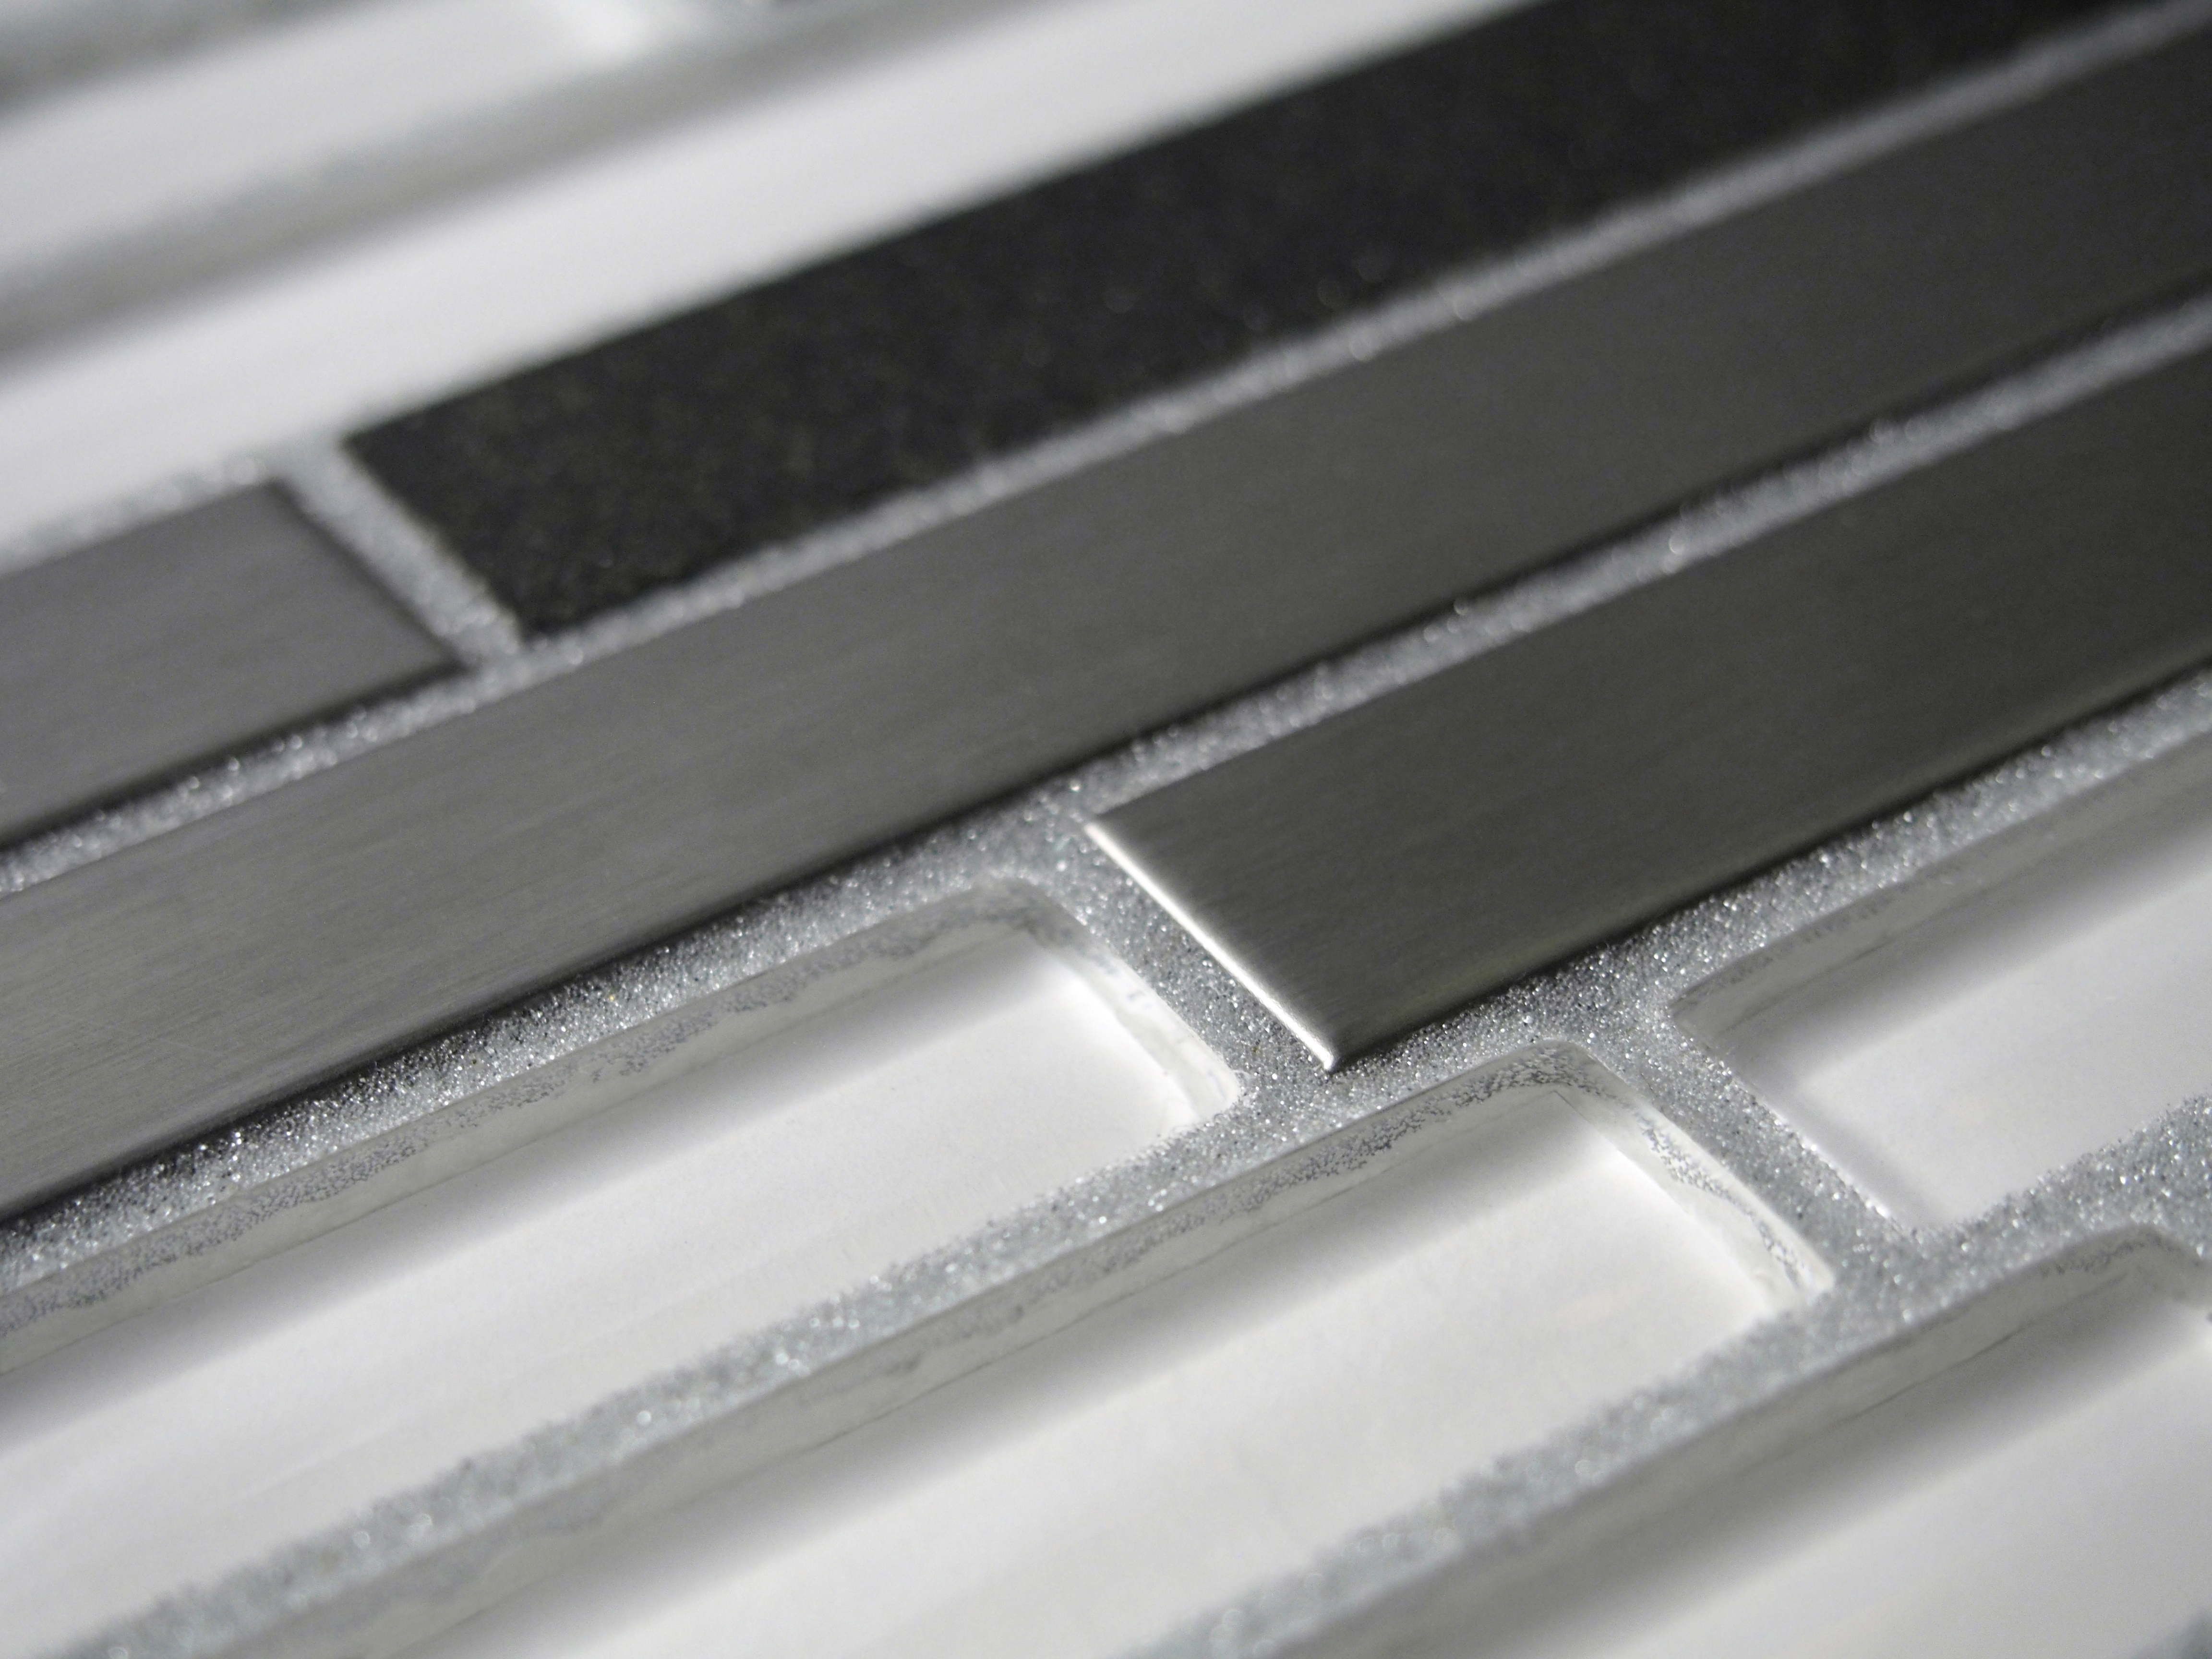 Tec 174 Introduces Design Fx A Design Inspired Grout